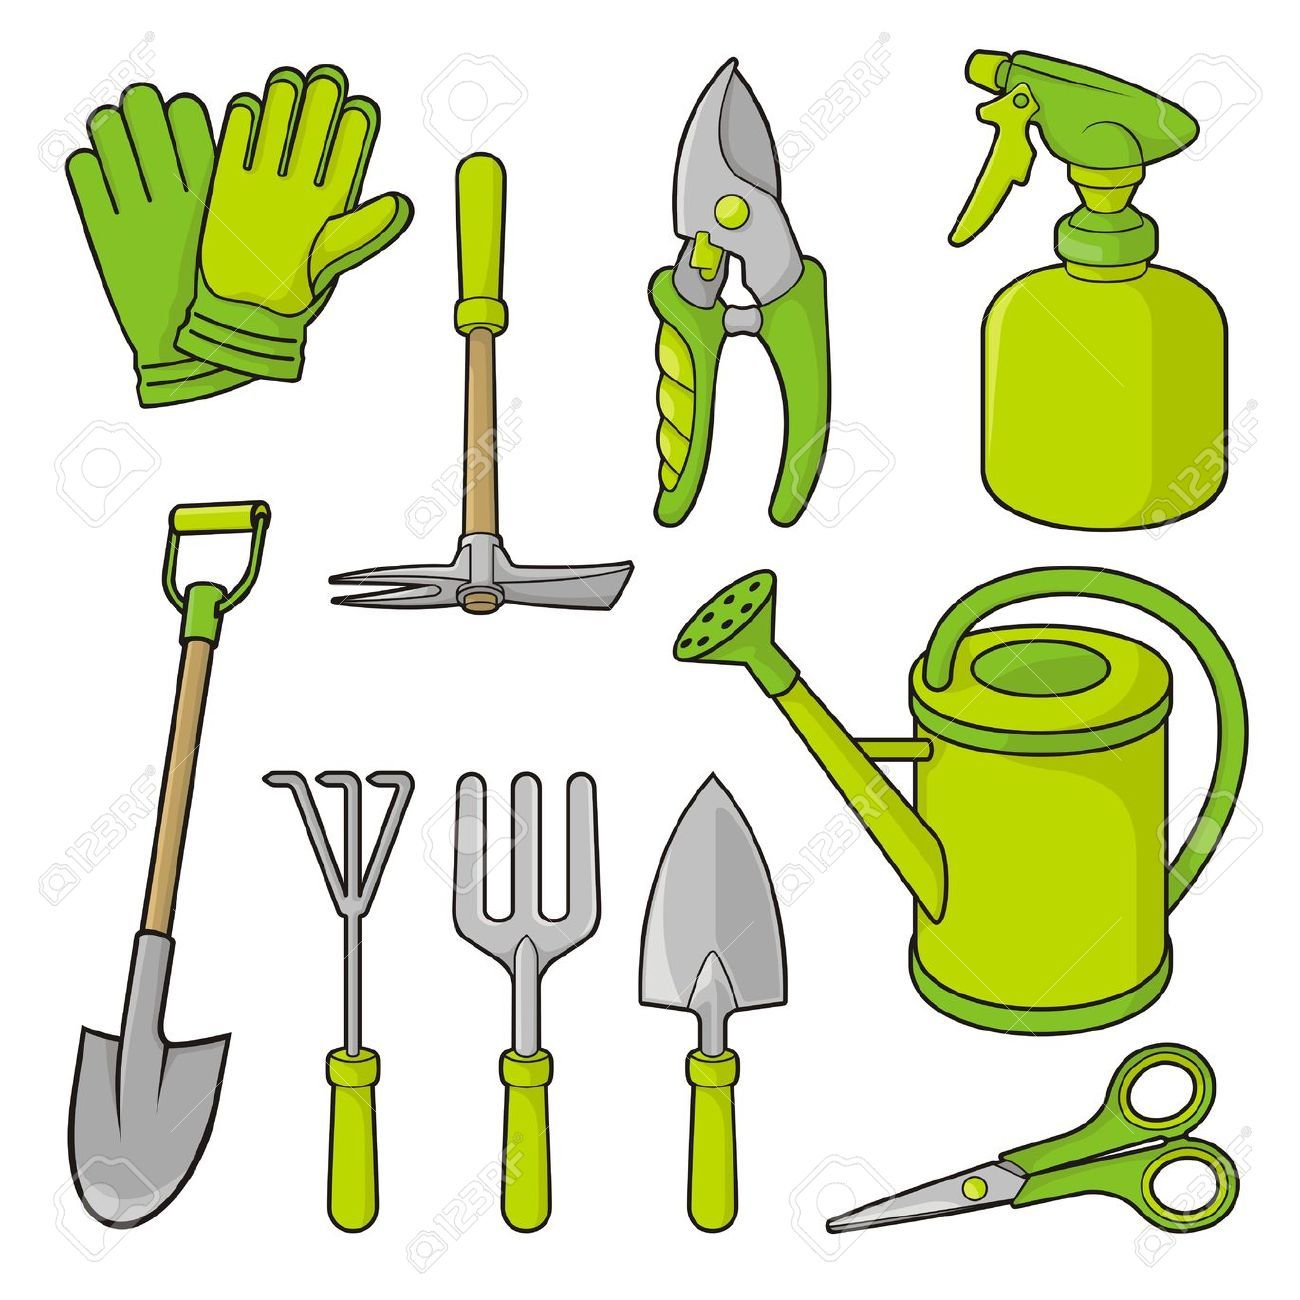 Gardening tools clip art free you can find out more for Gardening tools 4 letters